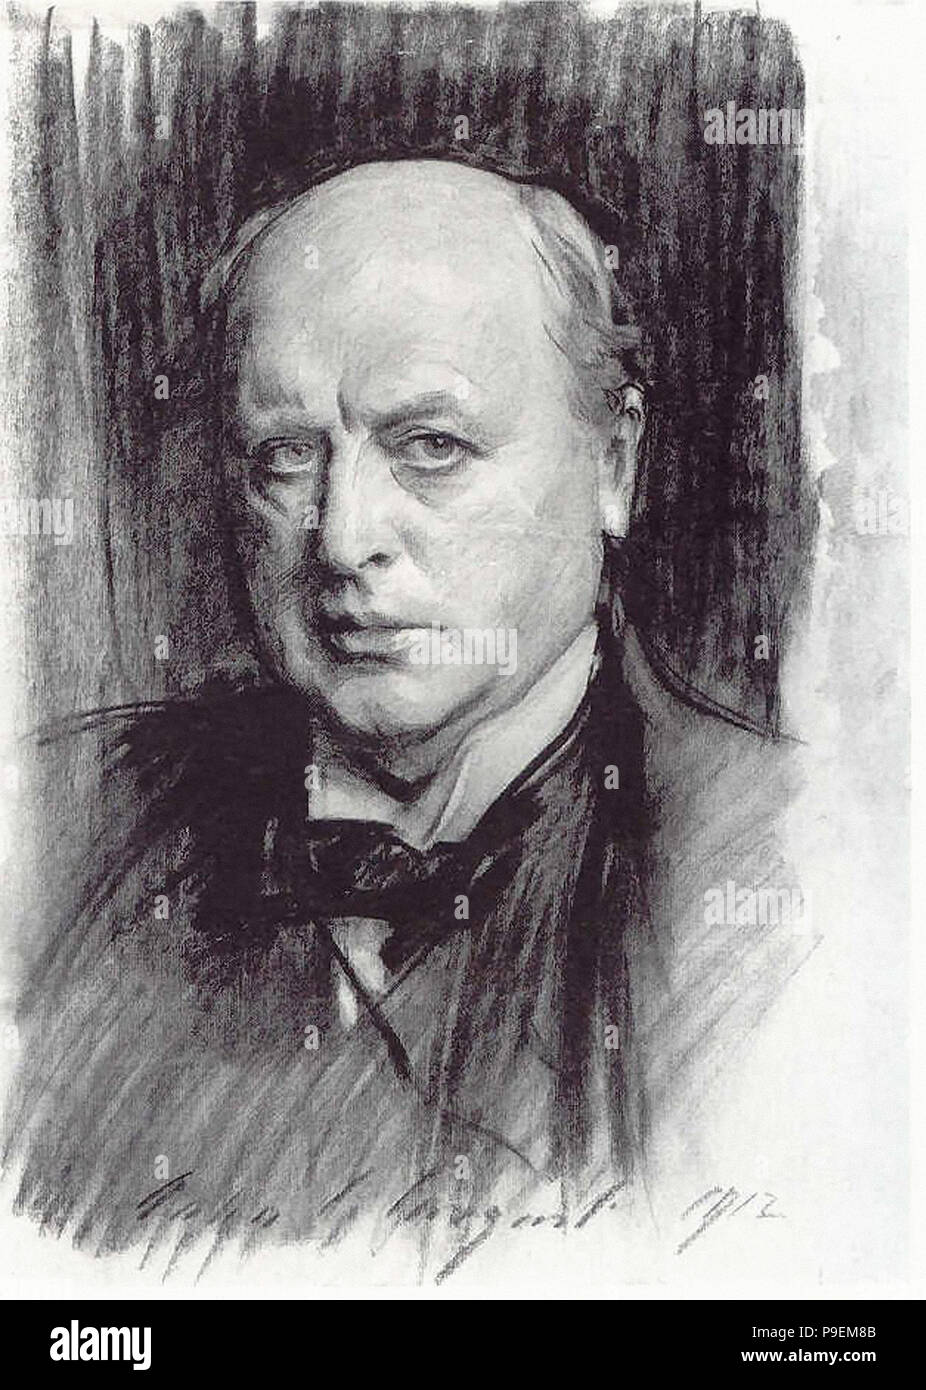 Henry James Sargent John Singer Henry James 1 Sketch Stock Photo 212379563